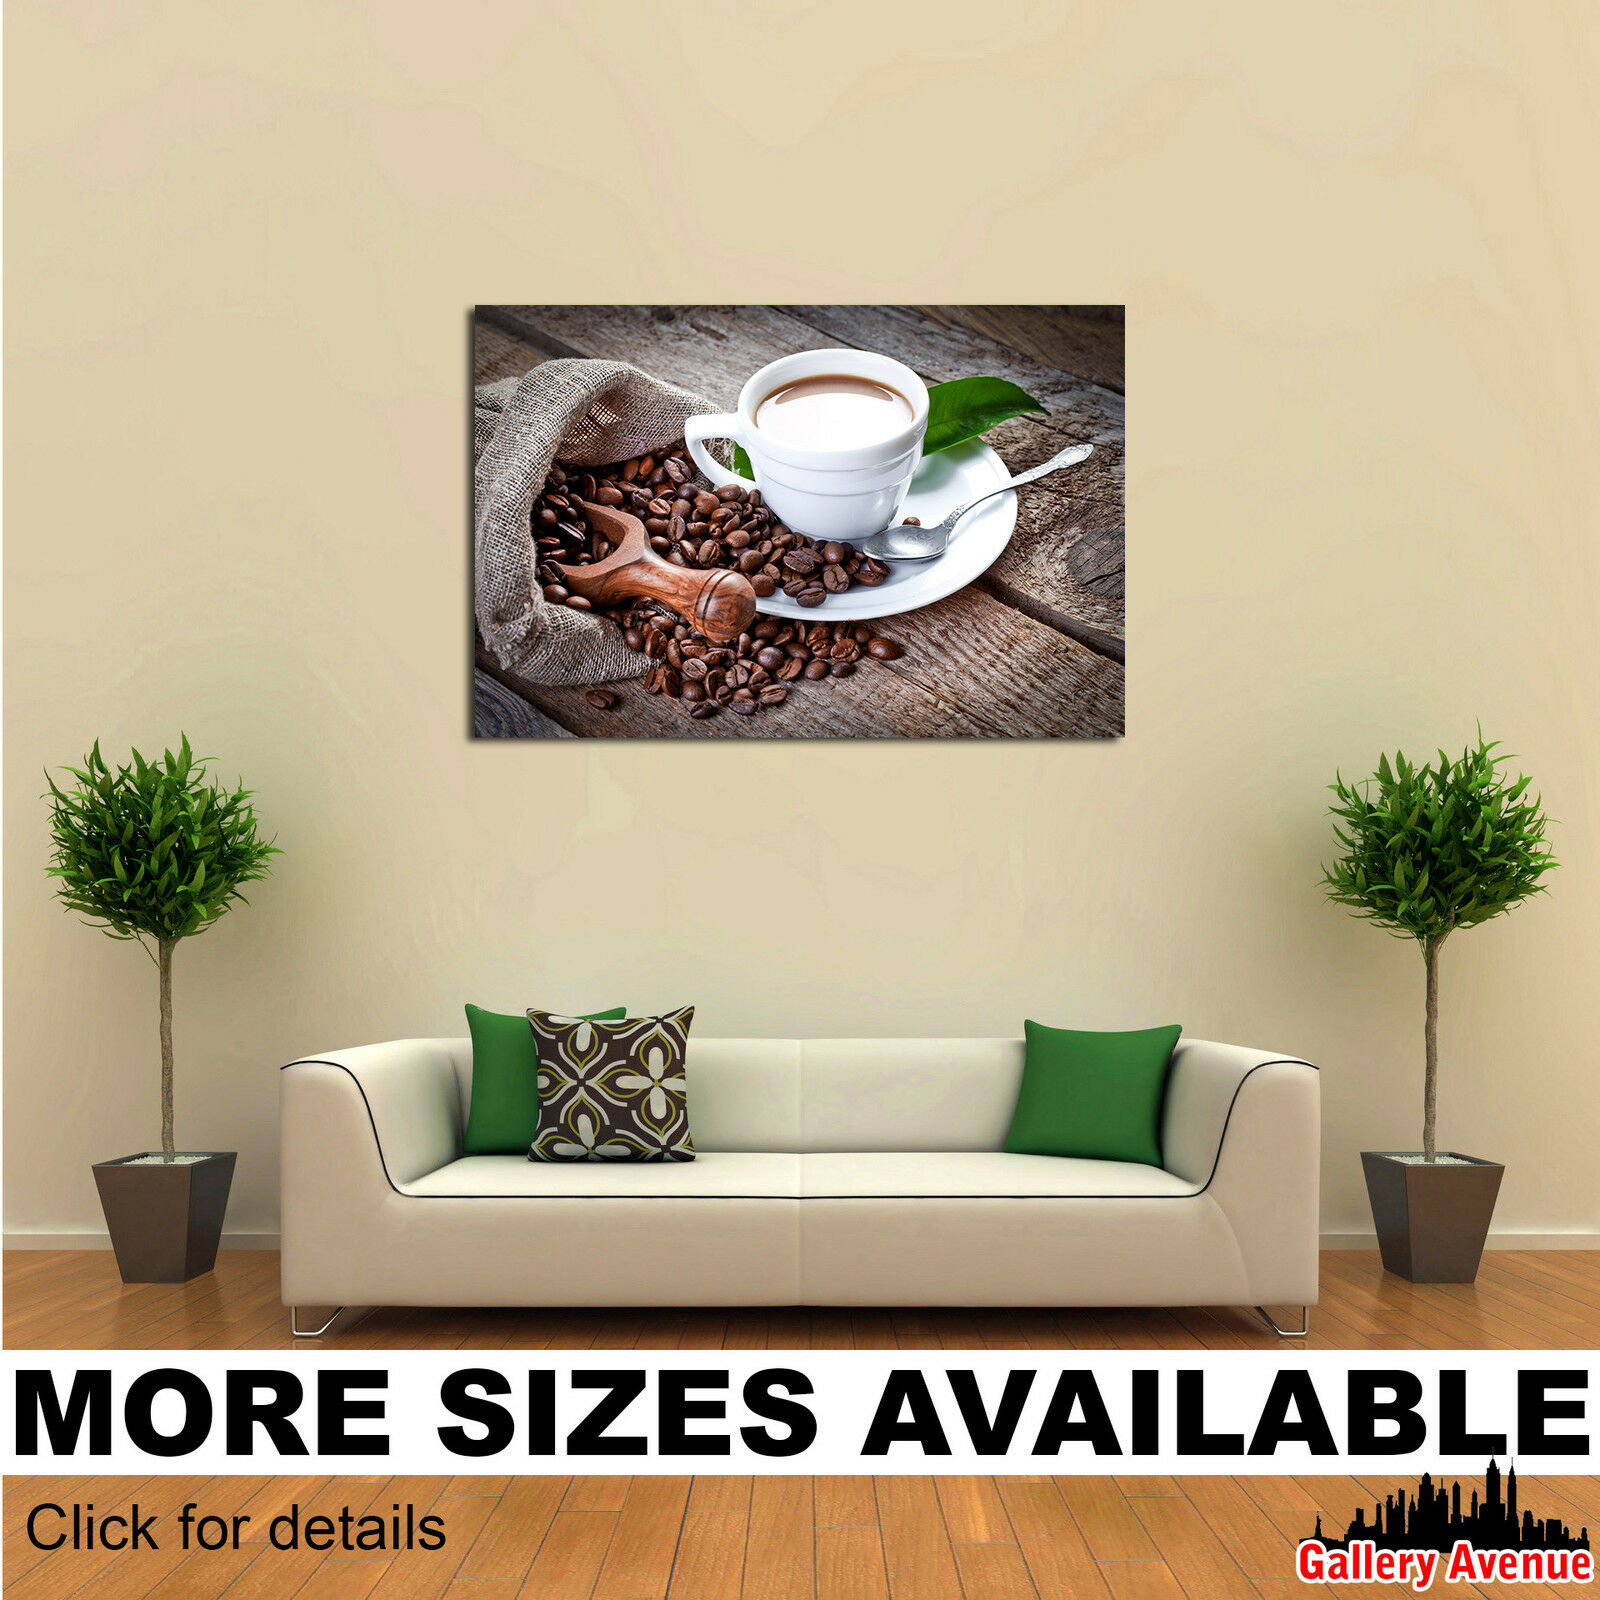 Wall Art Canvas Picture Print - Drinks Coffee Grain Cup Spoon Food 3.2